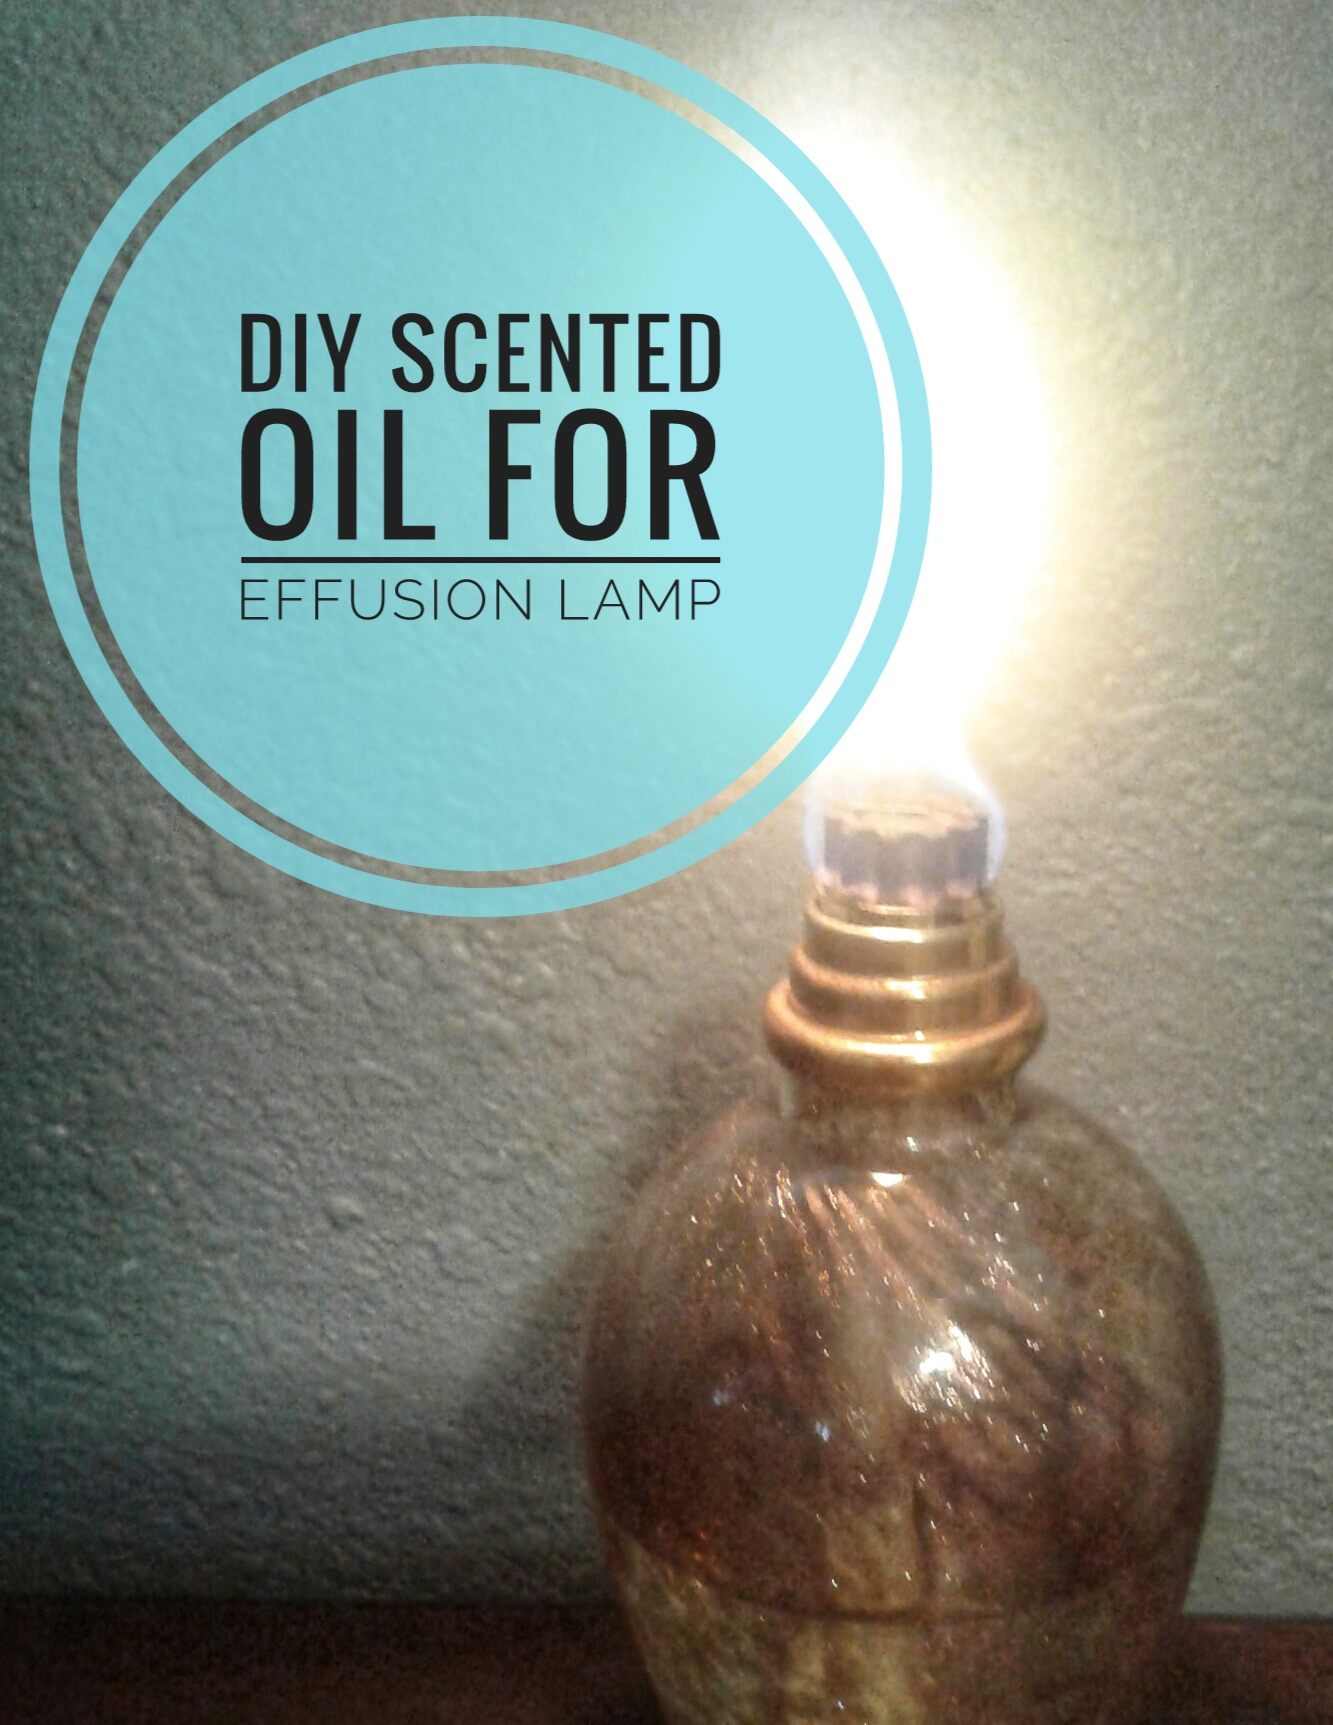 Diy Kerosene Lamp Diy Oil For Effusion Lamp Simple Mom Review